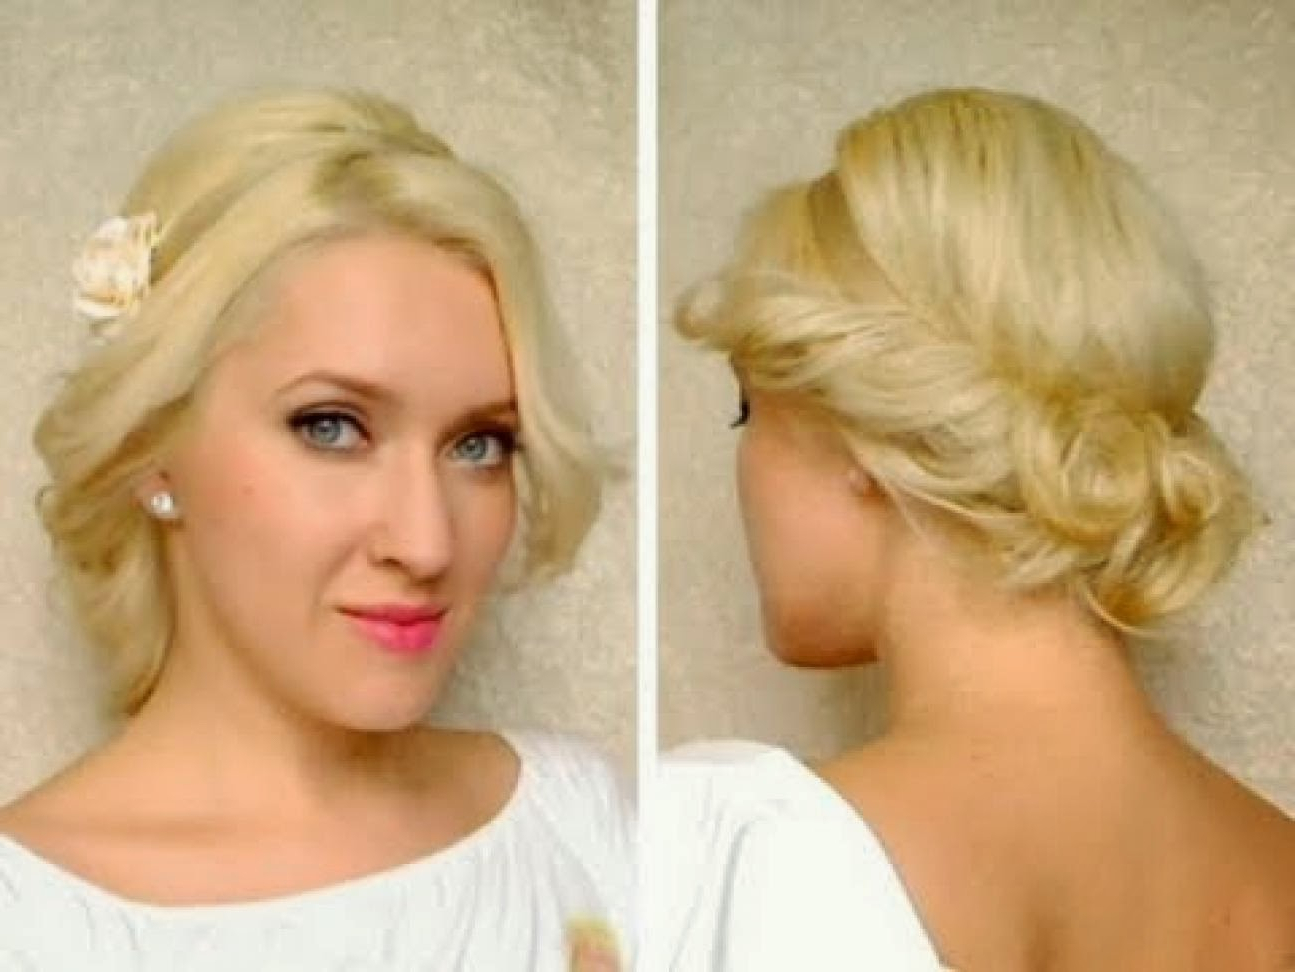 Cute Updo Hairstyles For Short Hair | Natural Hairstyles & Haircuts 2015 Inside Cute Wedding Hairstyles For Short Hair (View 7 of 25)